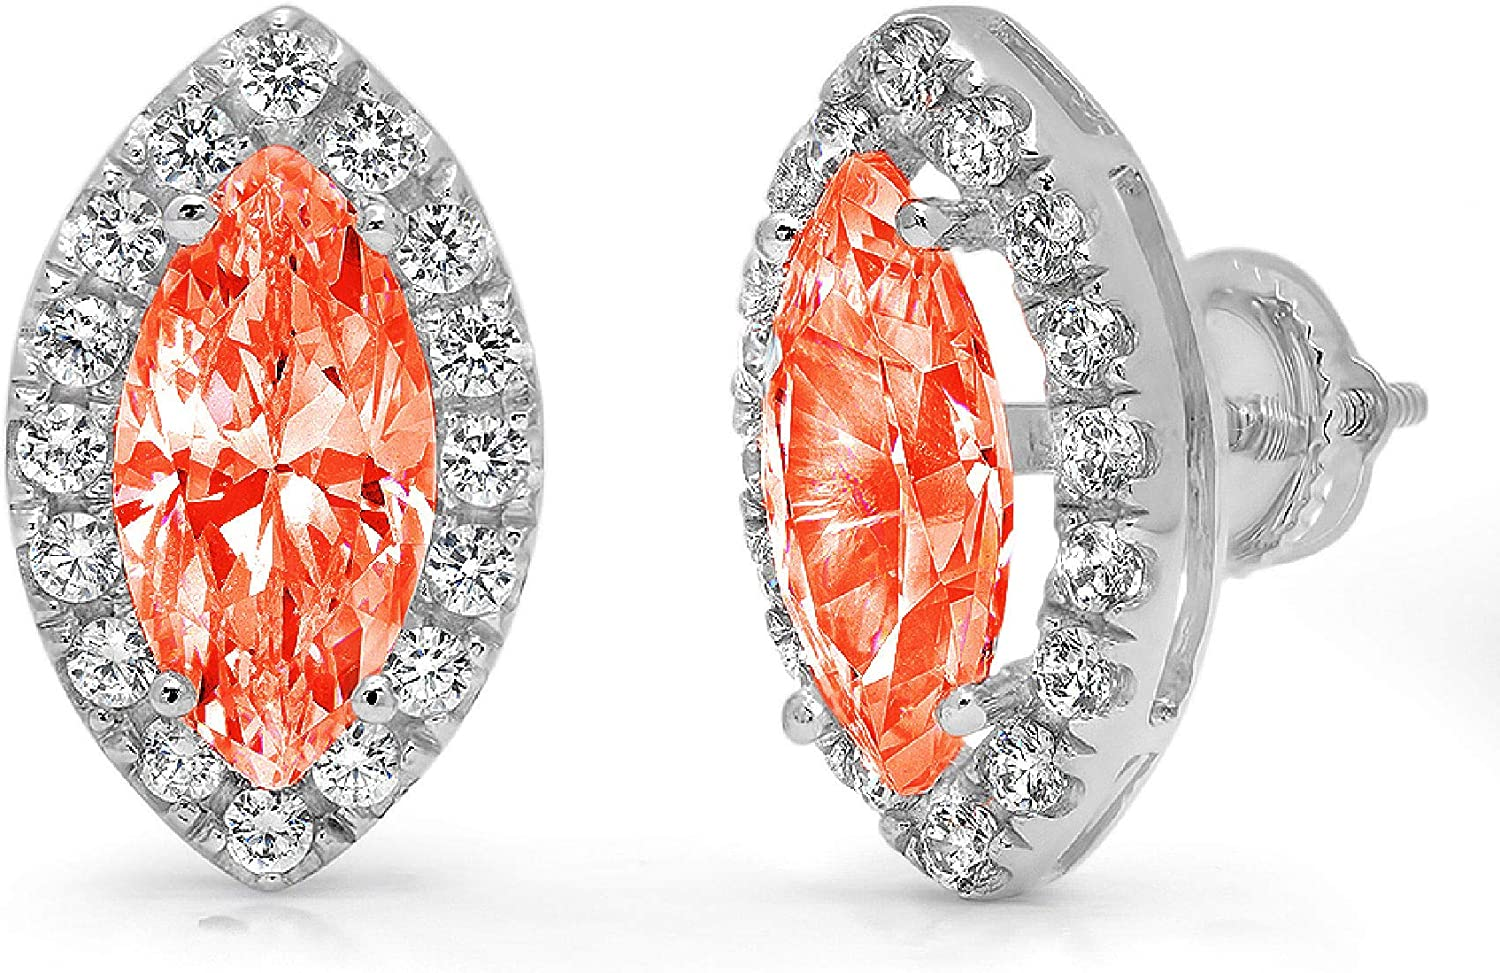 Clara Pucci 3.64 ct Brilliant Marquise Round Cut Halo Solitaire VVS1 Fine Red Simulated Diamond Gemstone Pair of Solitaire Stud Screw Back Earrings Solid 18K White Gold